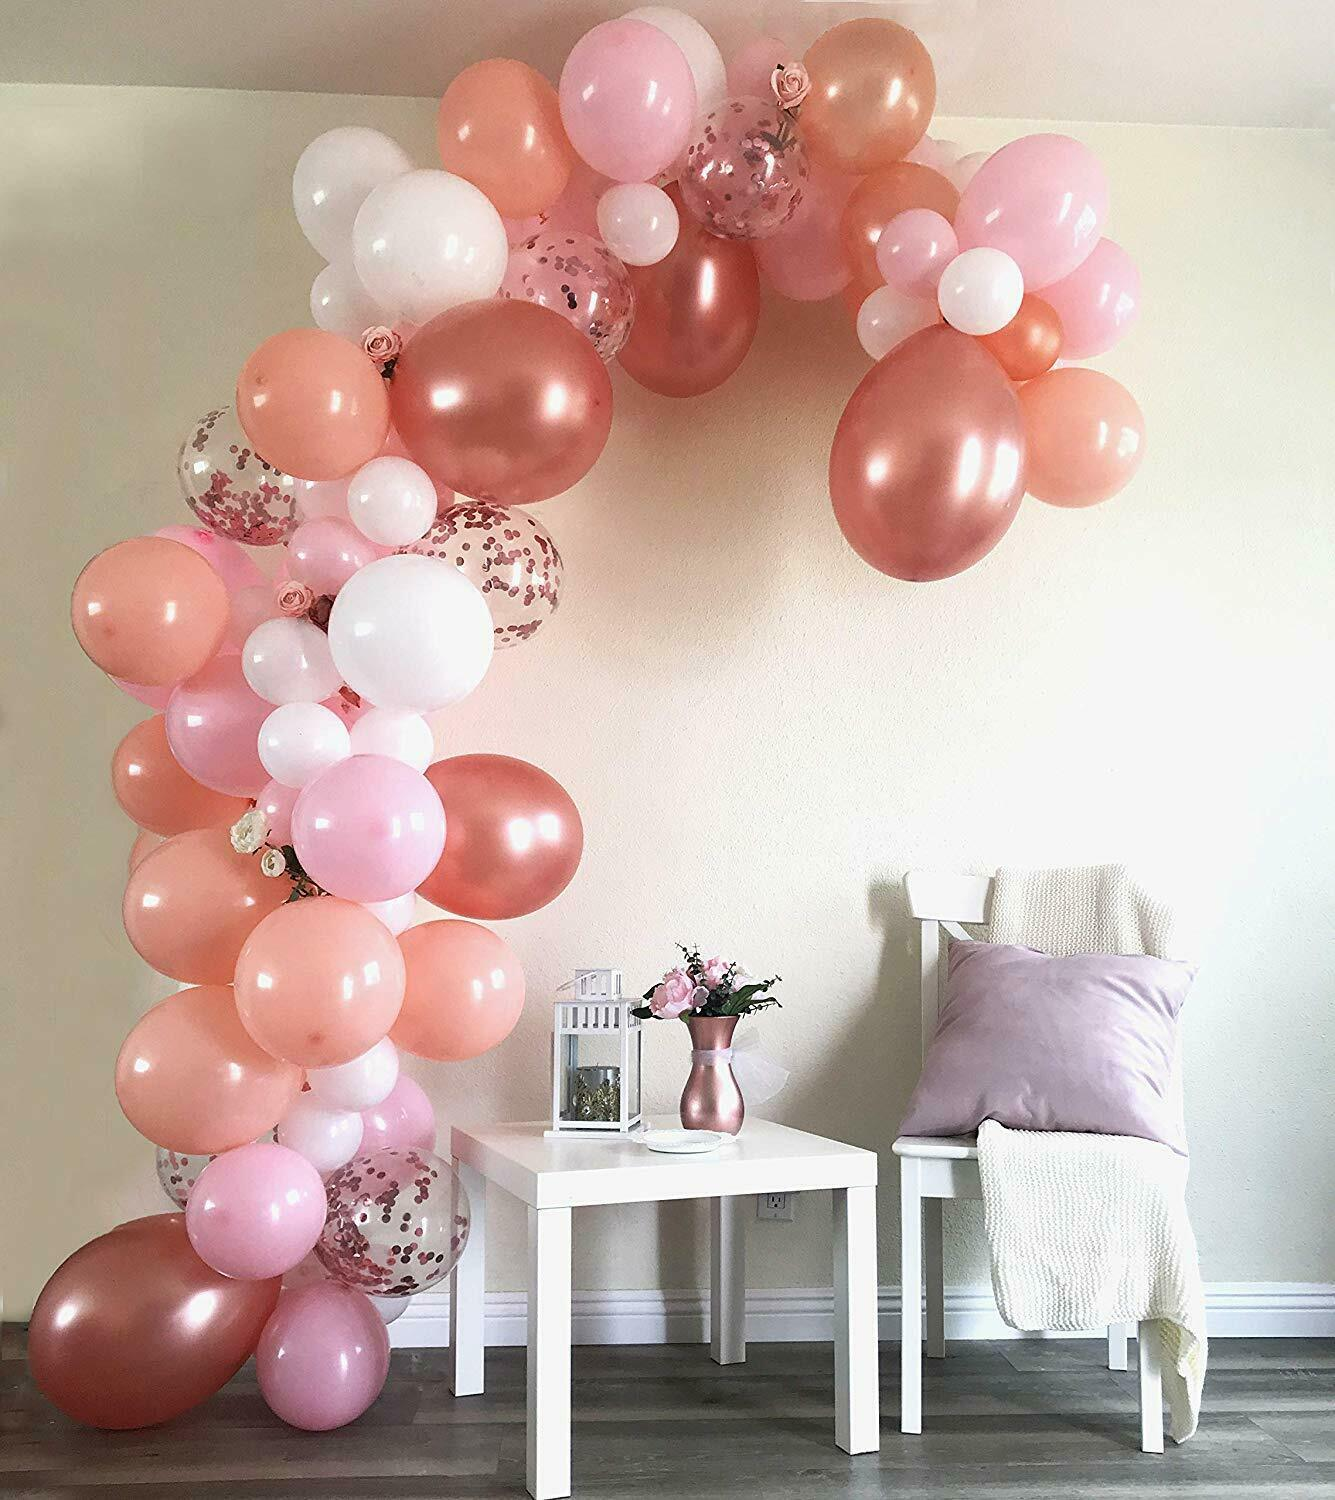 Diy Rose Gold Confetti Birthday Baby Shower Balloon Garland Arch Kit Decoration Ebay